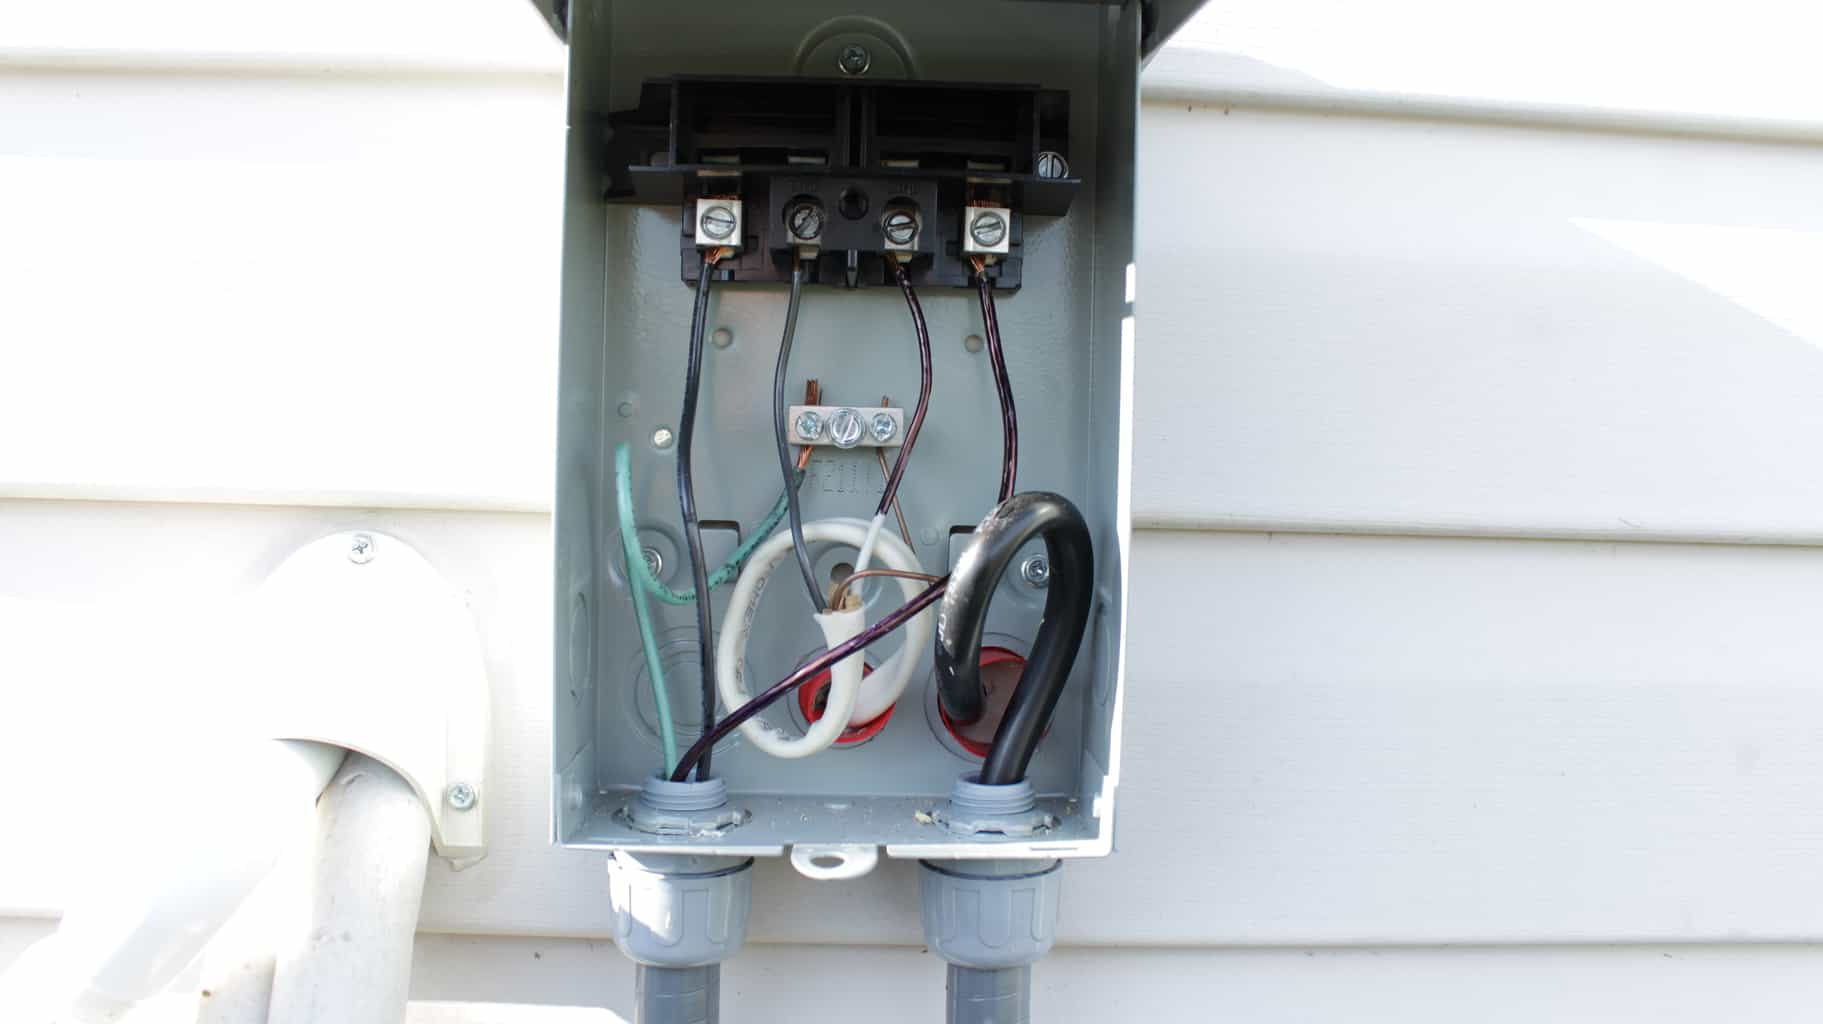 Outdoor Electrical Disconnect Box Not Lossing Wiring Diagram Enclosure Inside Of The Makercise Rh Com Main